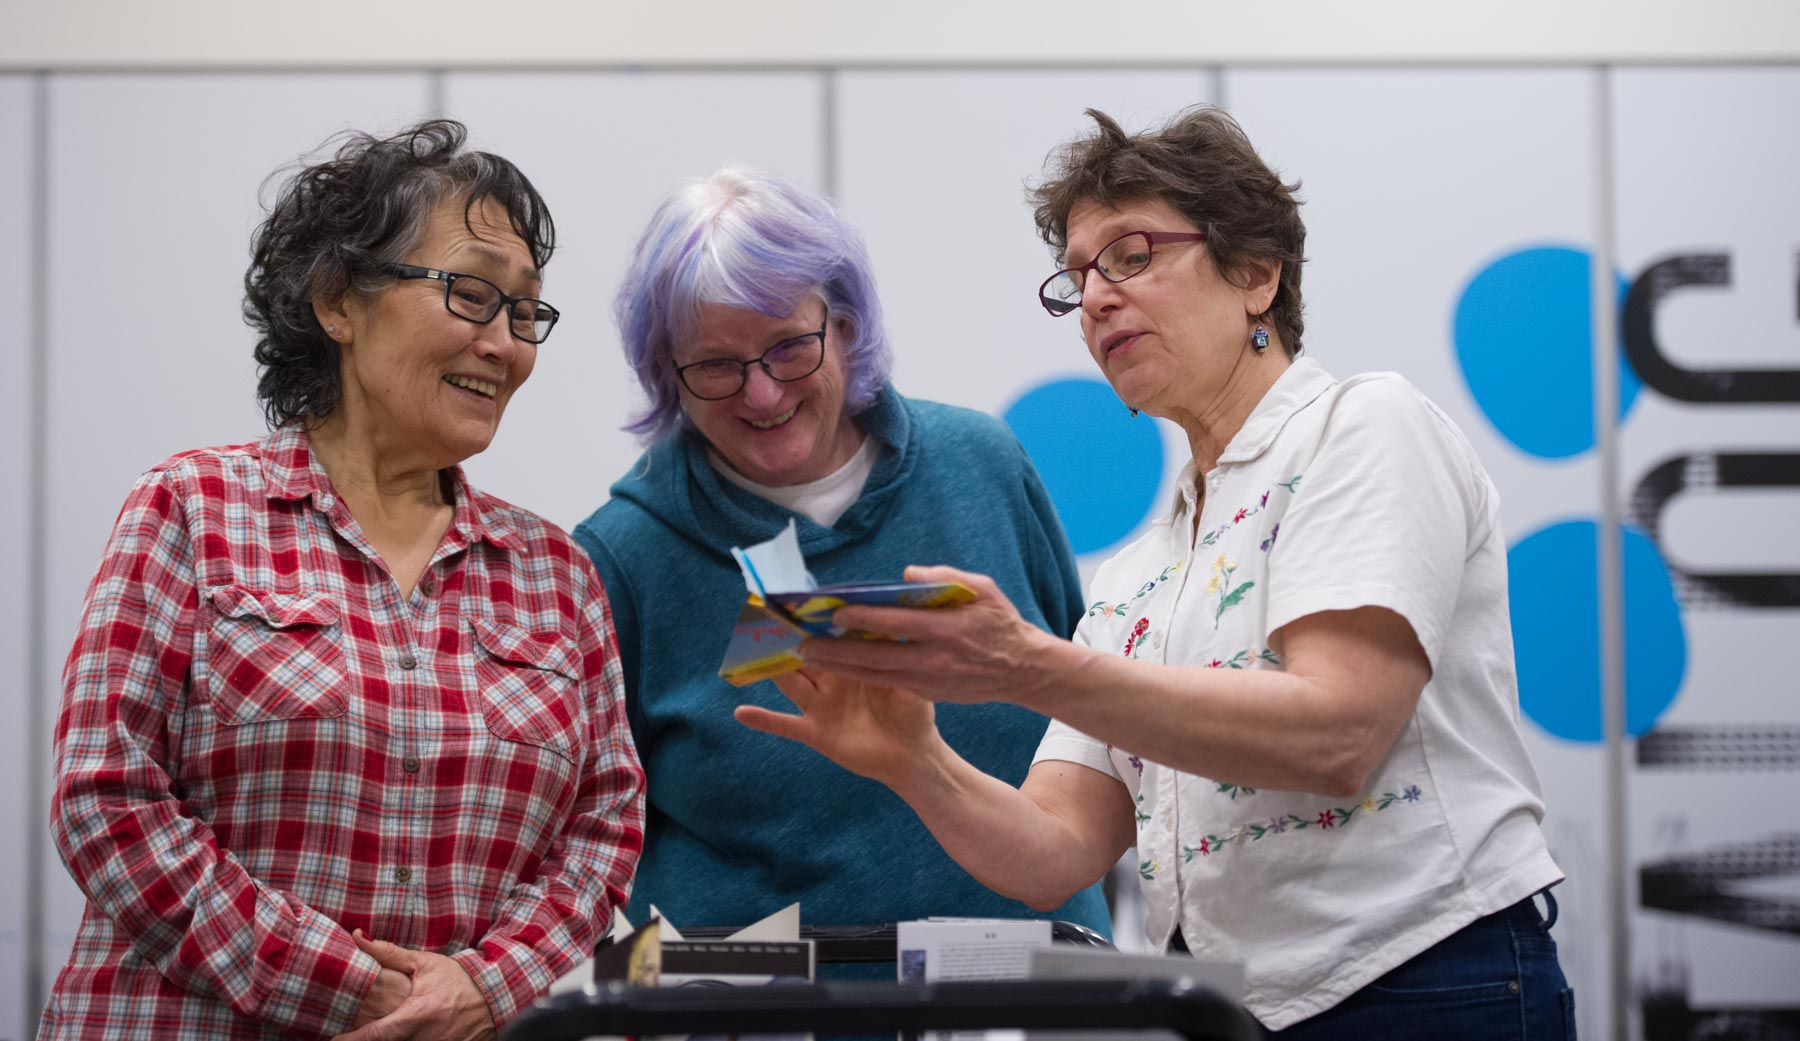 A group of people looking at an art project and smiling